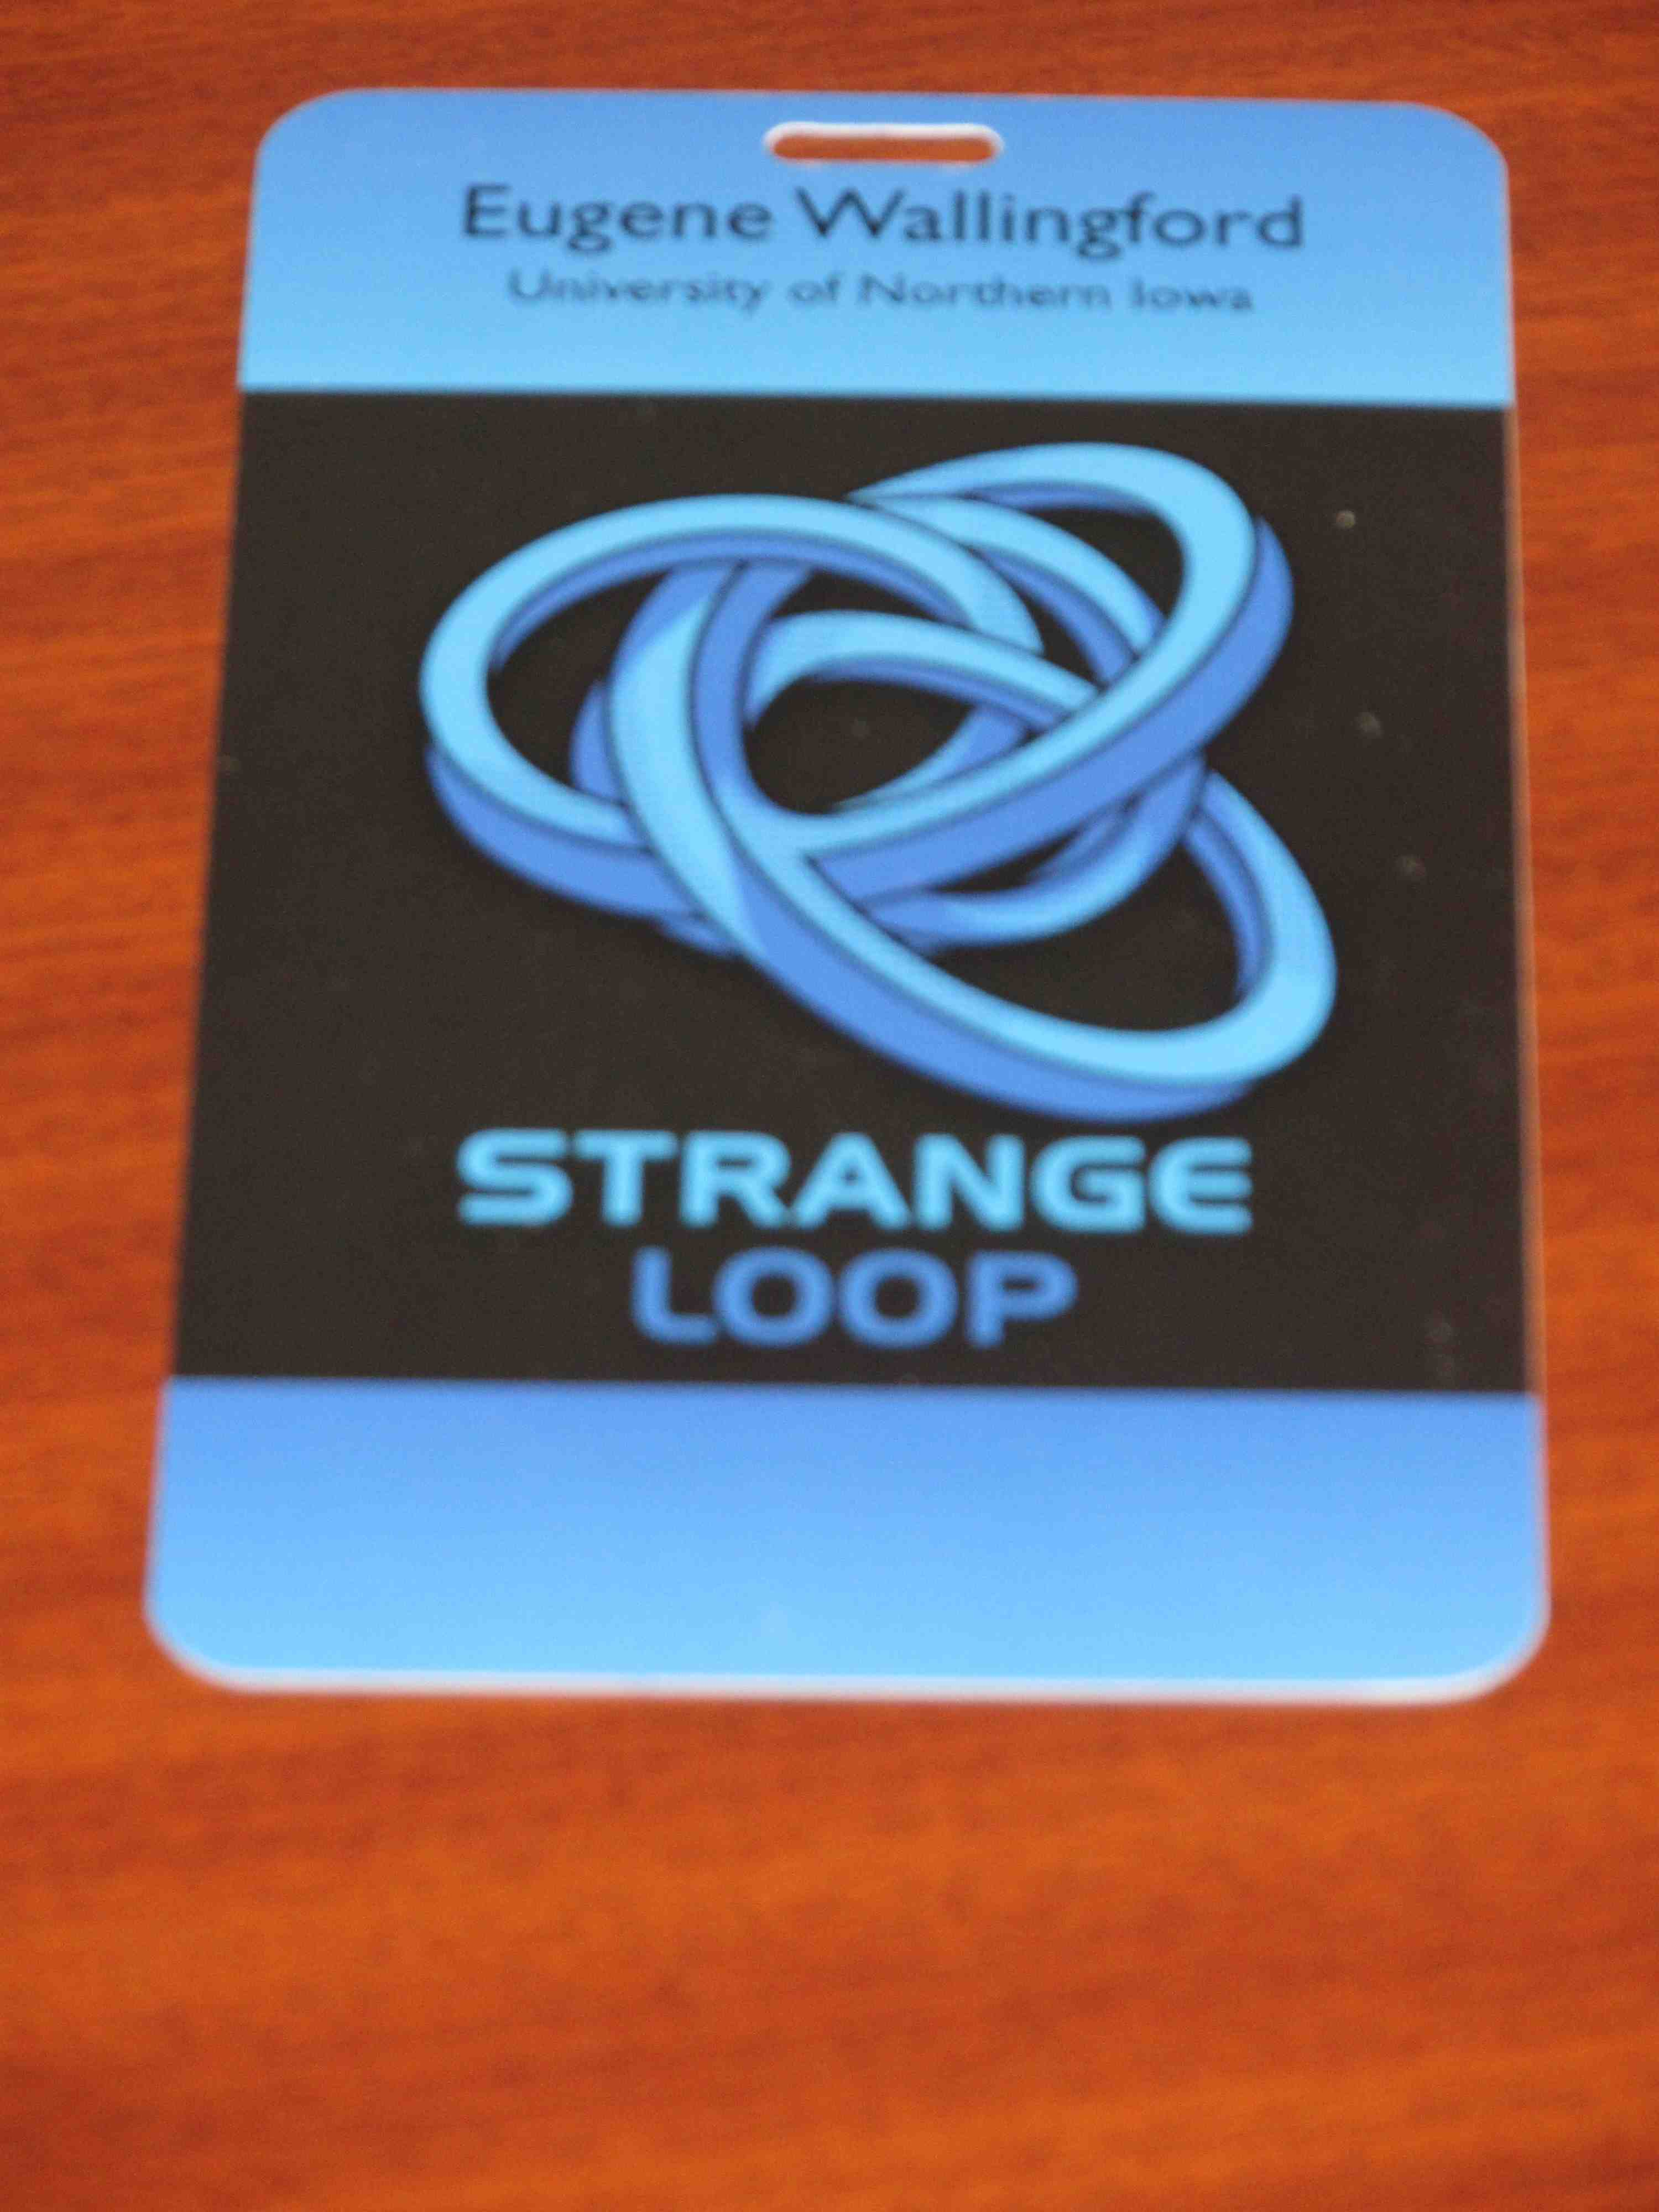 my StrangeLoop 2012 conference badge